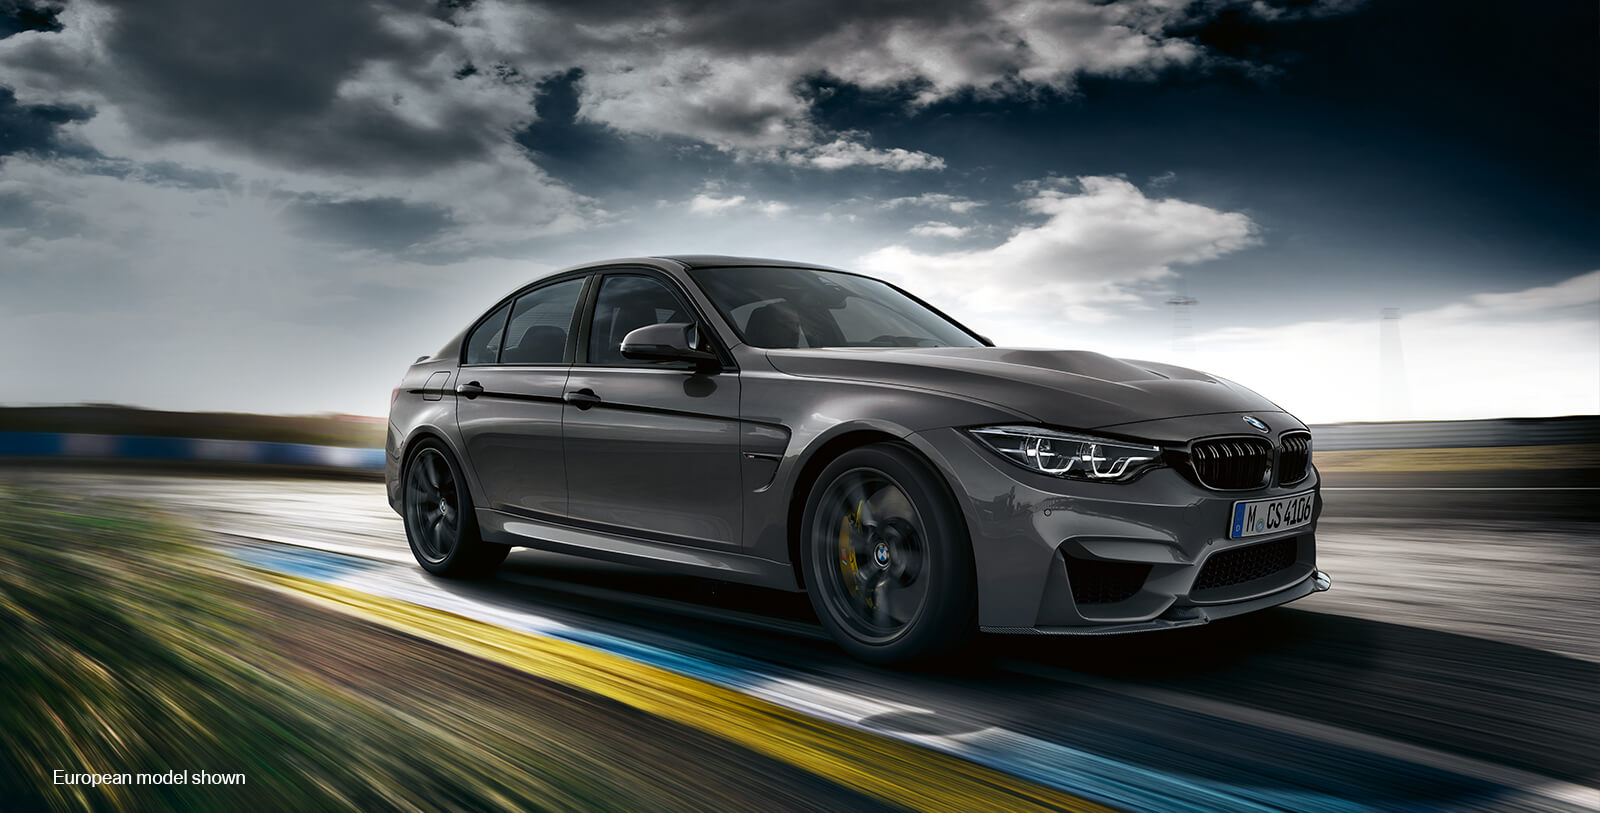 The Bmw M3 Cs Limited Edition Vehicle Bmw Usa